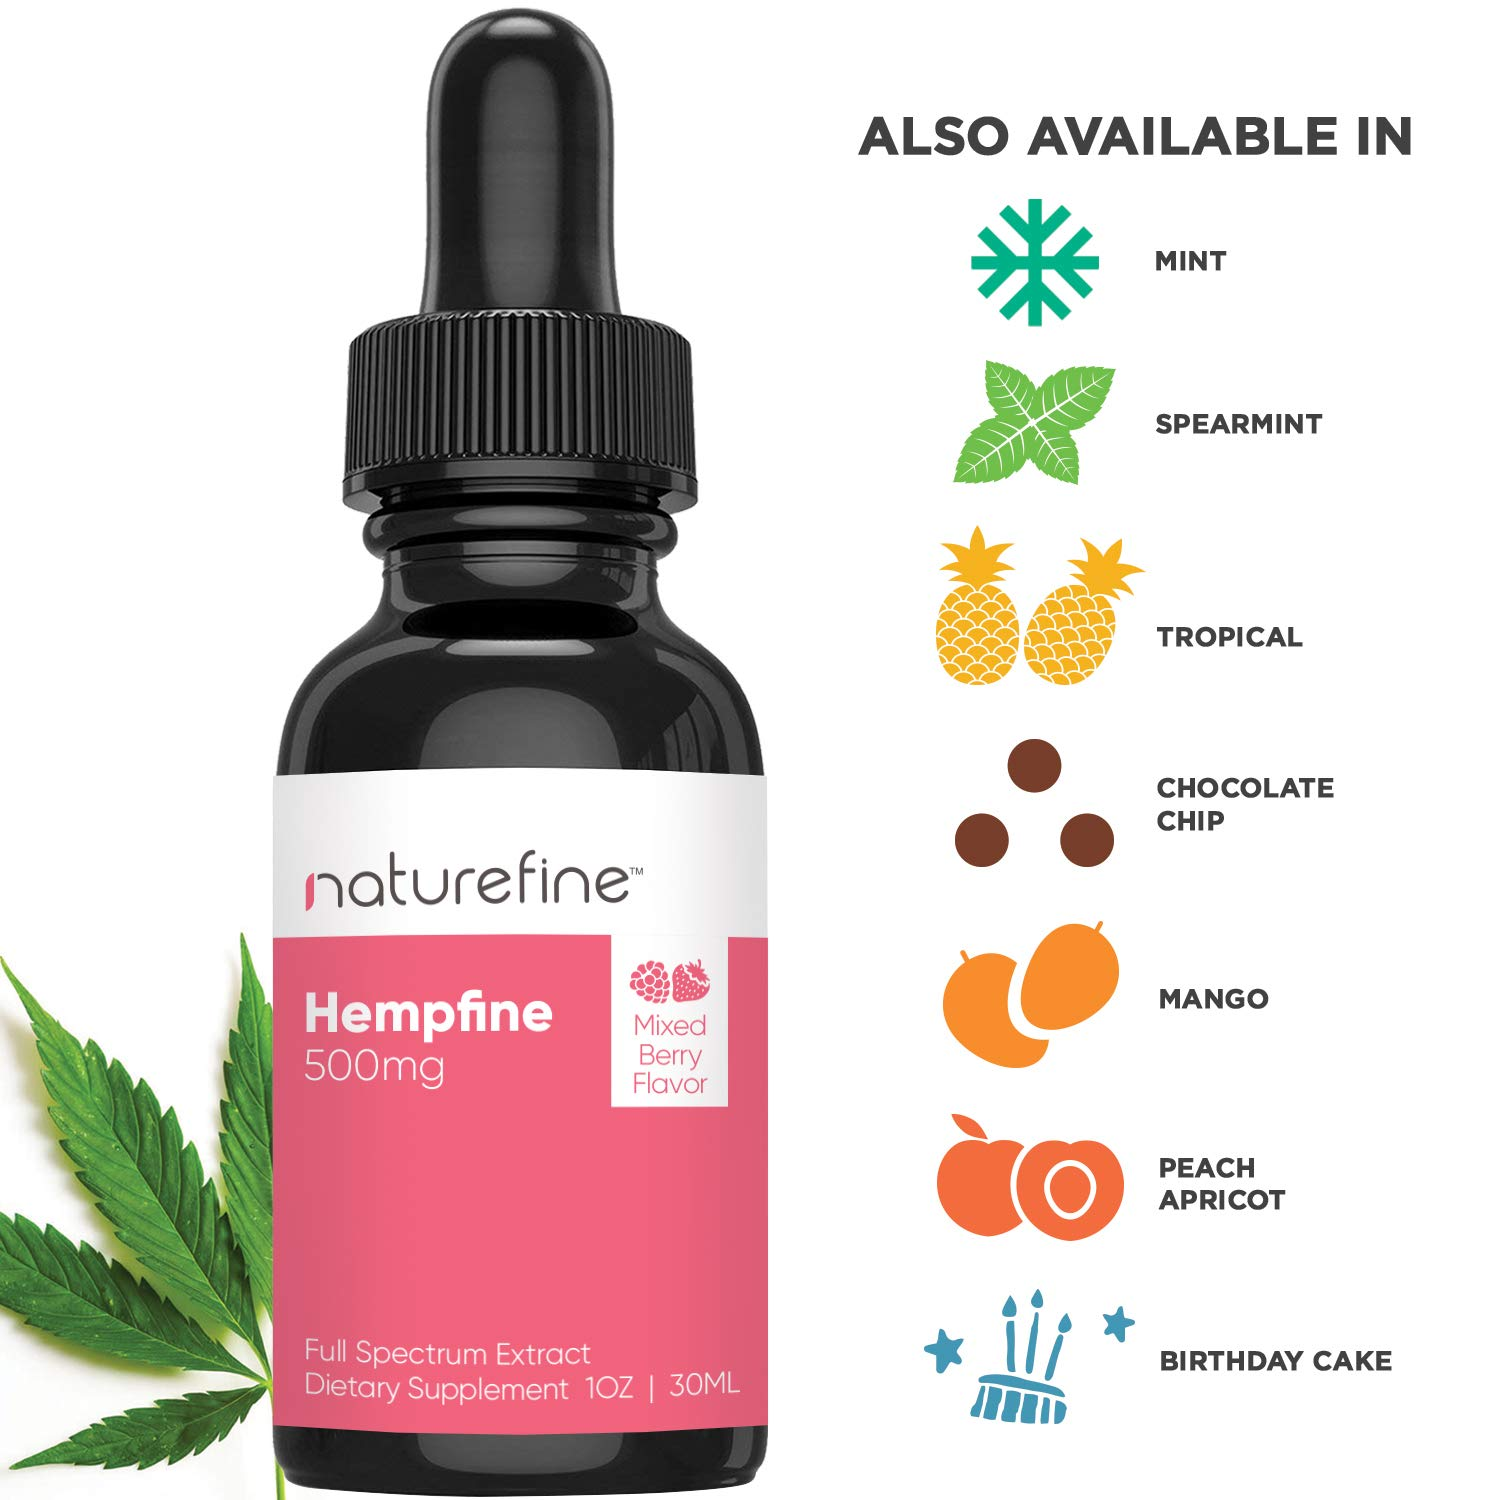 25faf2b5c4f2b Amazon.com: Hemp Oil - (500 MG) - Full Spectrum Hemp Oil - New Mixed Berry  Flavor - Natural Pain Relief & Anxiety - Hempfine - Proudly Grown & Made in  USA: ...